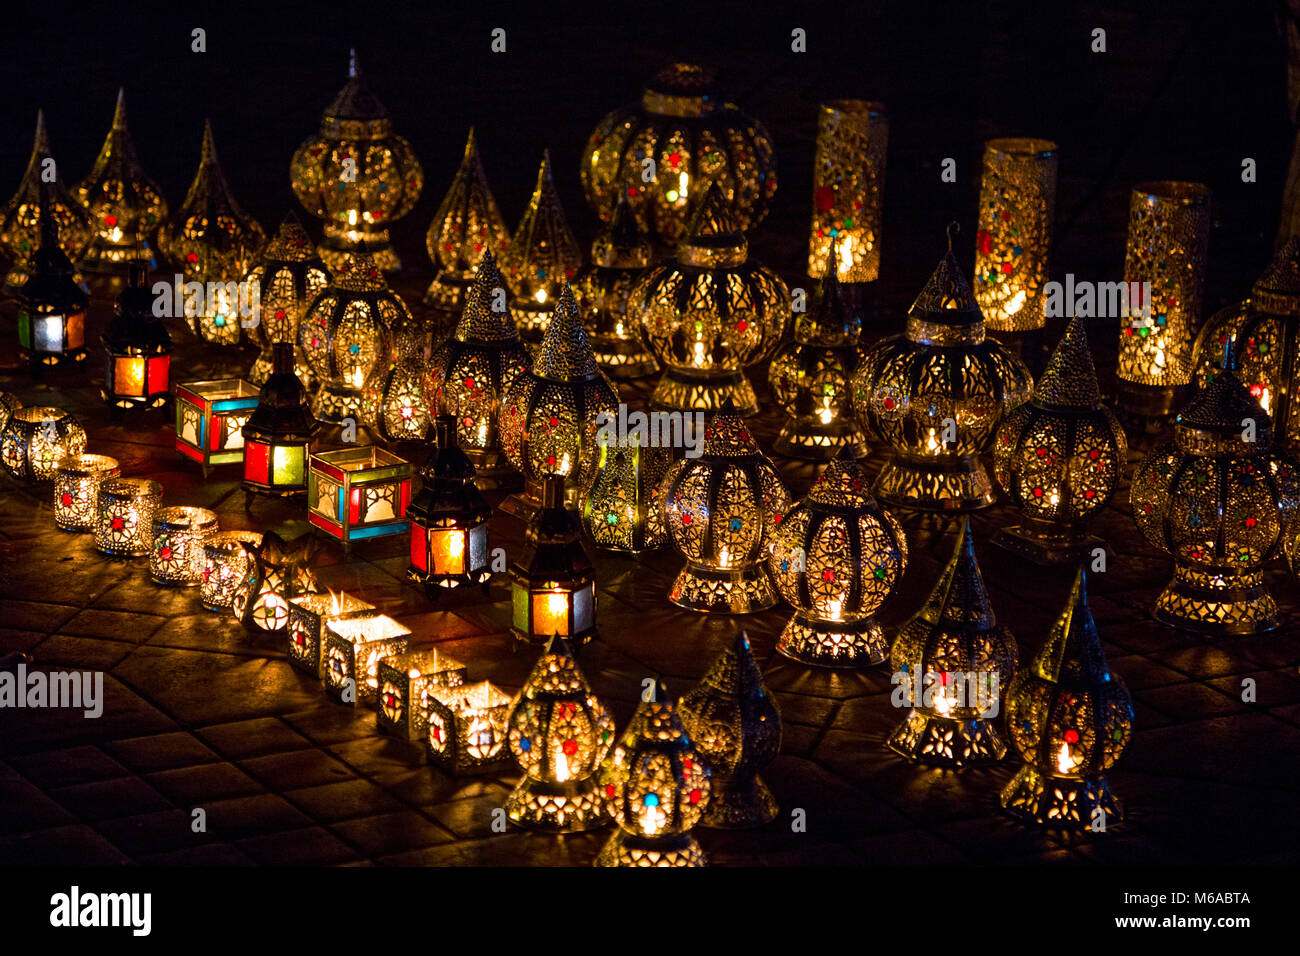 Display of colourful oriental lamps in the market in Marrakesh, Morocco Stock Photo